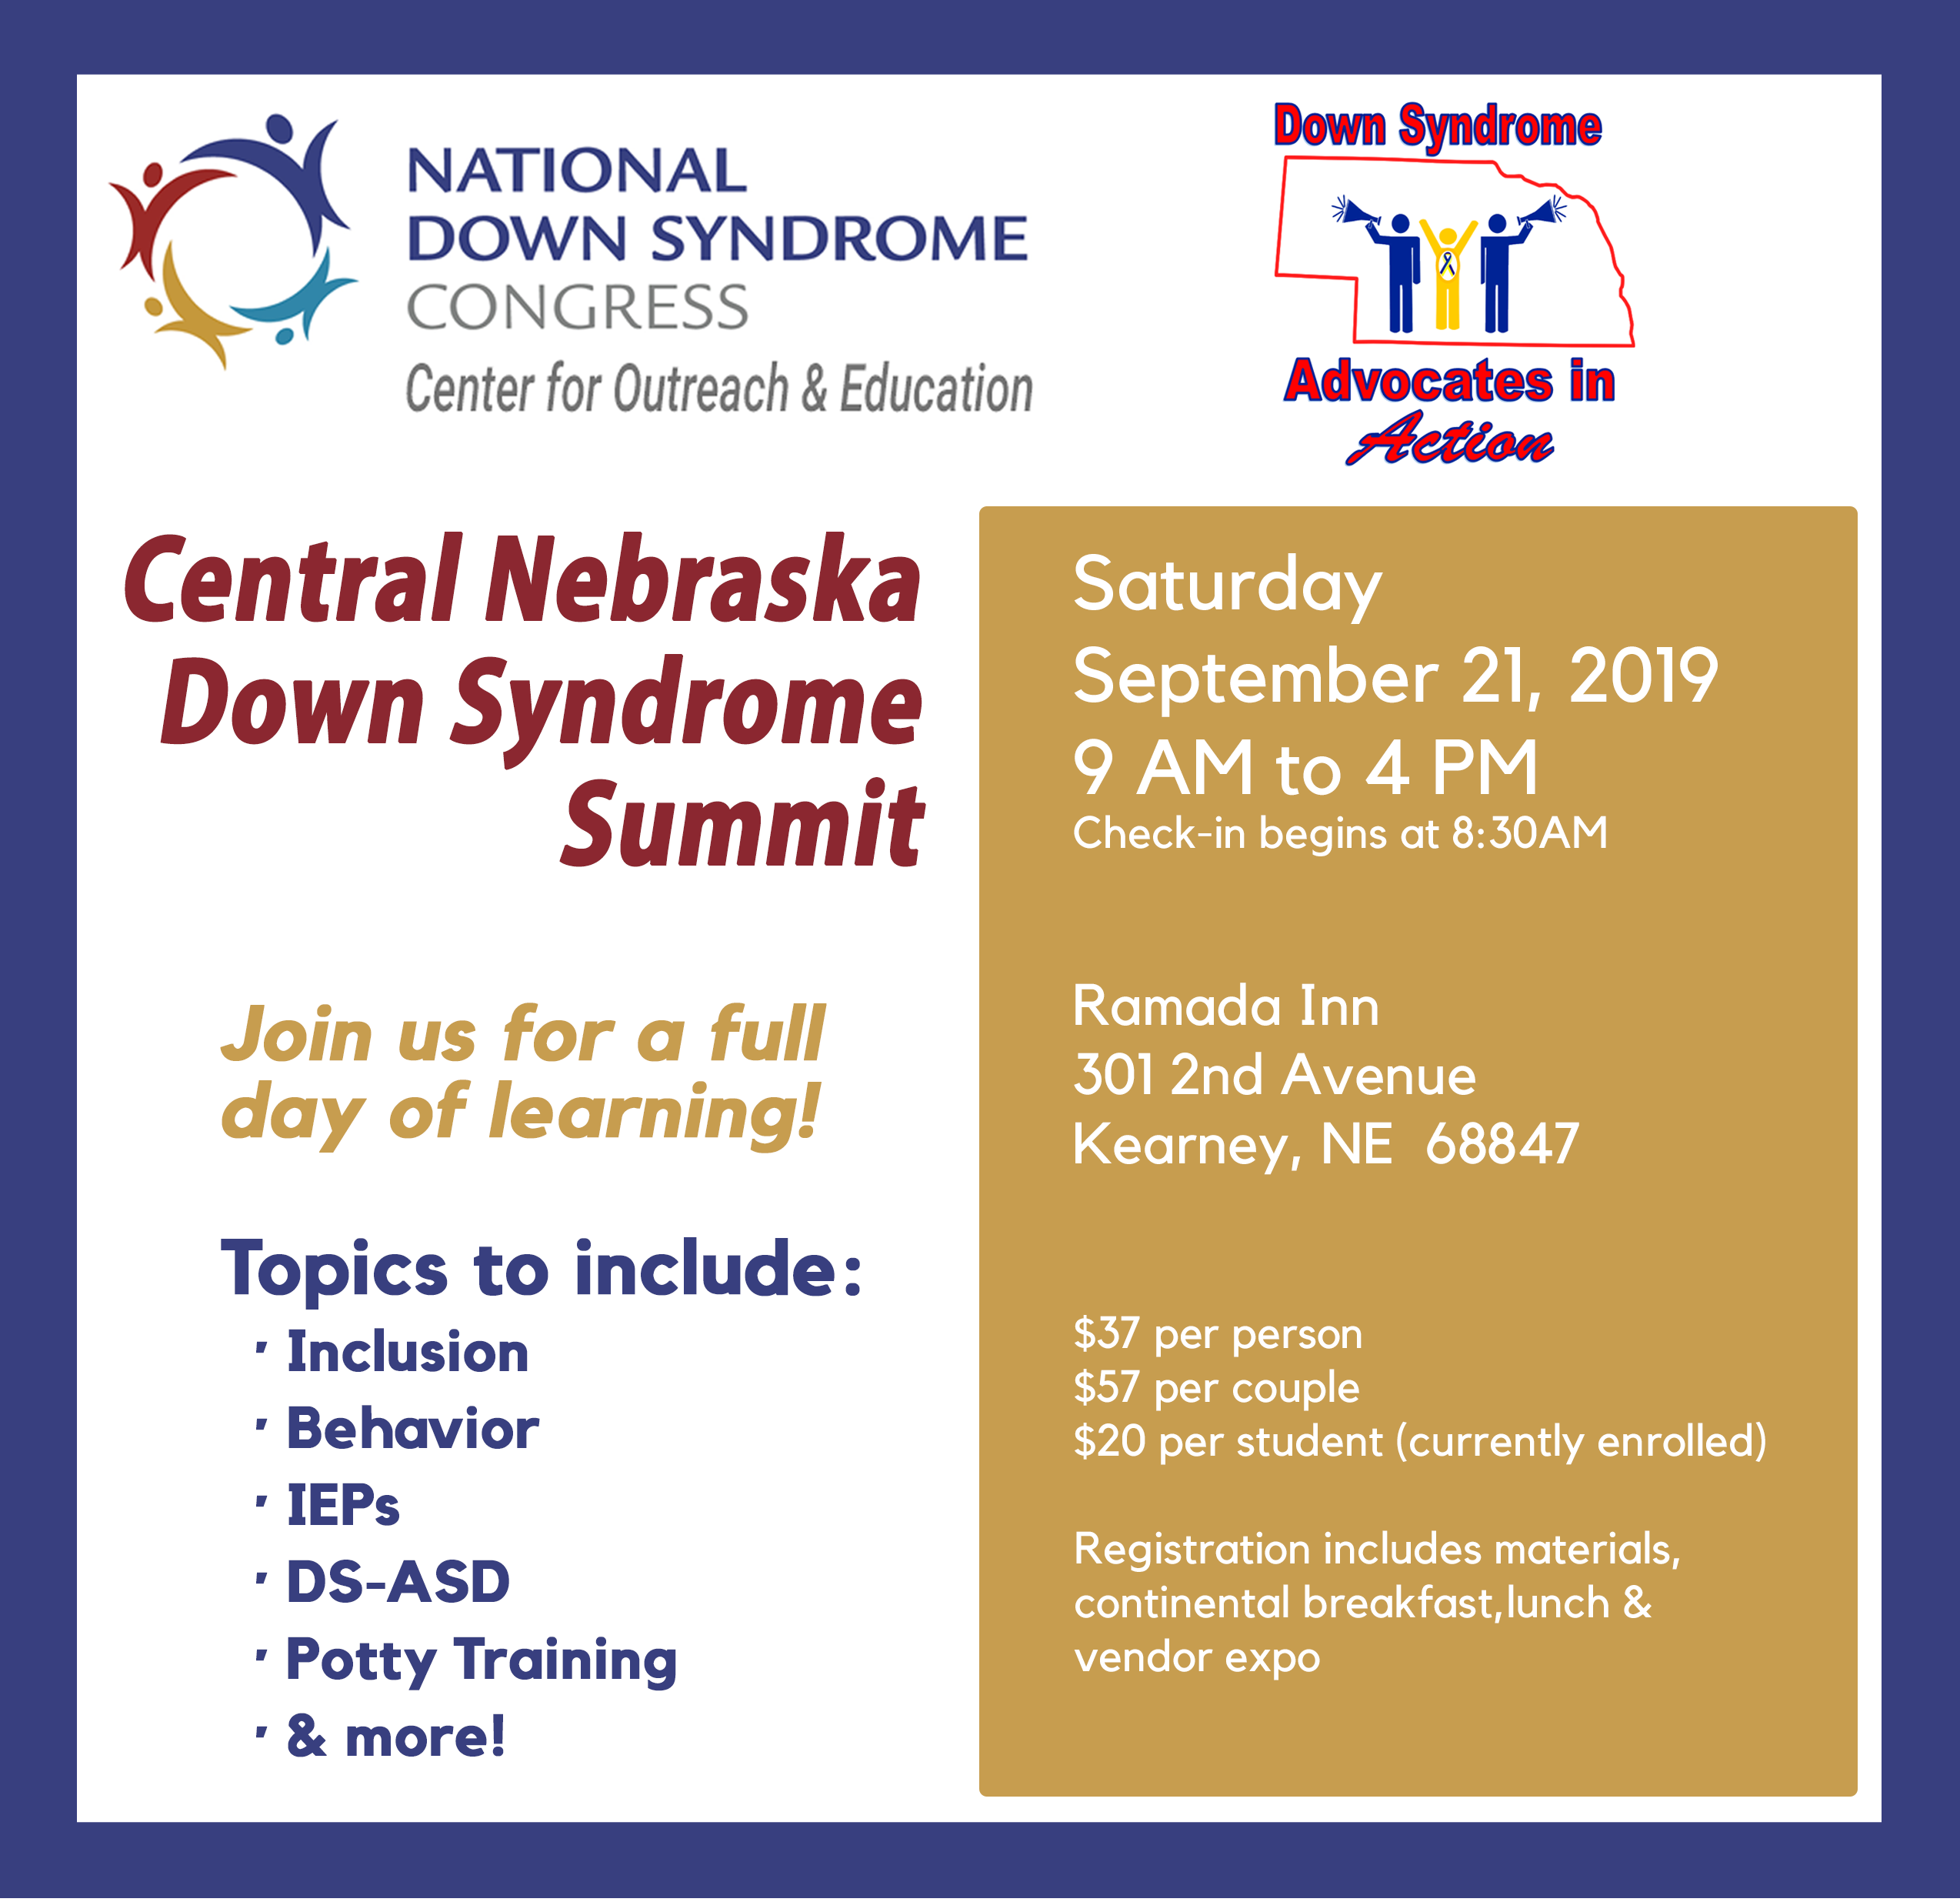 Down Syndrome Summit | National Down Syndrome Congress